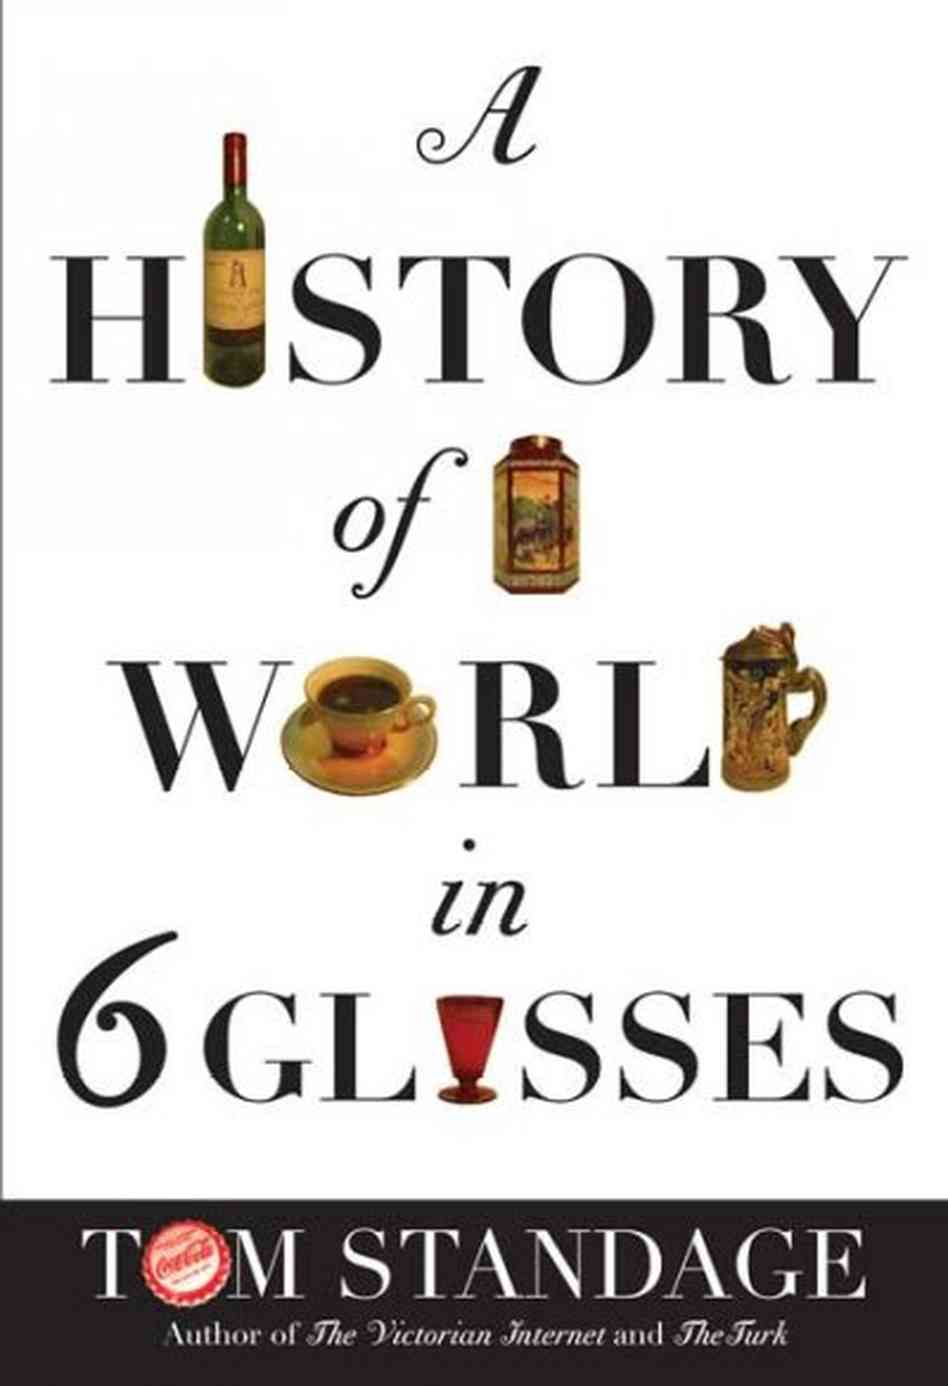 world in 6 glasses Tom standage urges drinkers to savor the history of their favorite beverages along with the taste the author of a history of the world in 6 glasses (walker & company, june 2005), standage lauds the libations that have helped shape our world from the stone age to the present day the ancient.